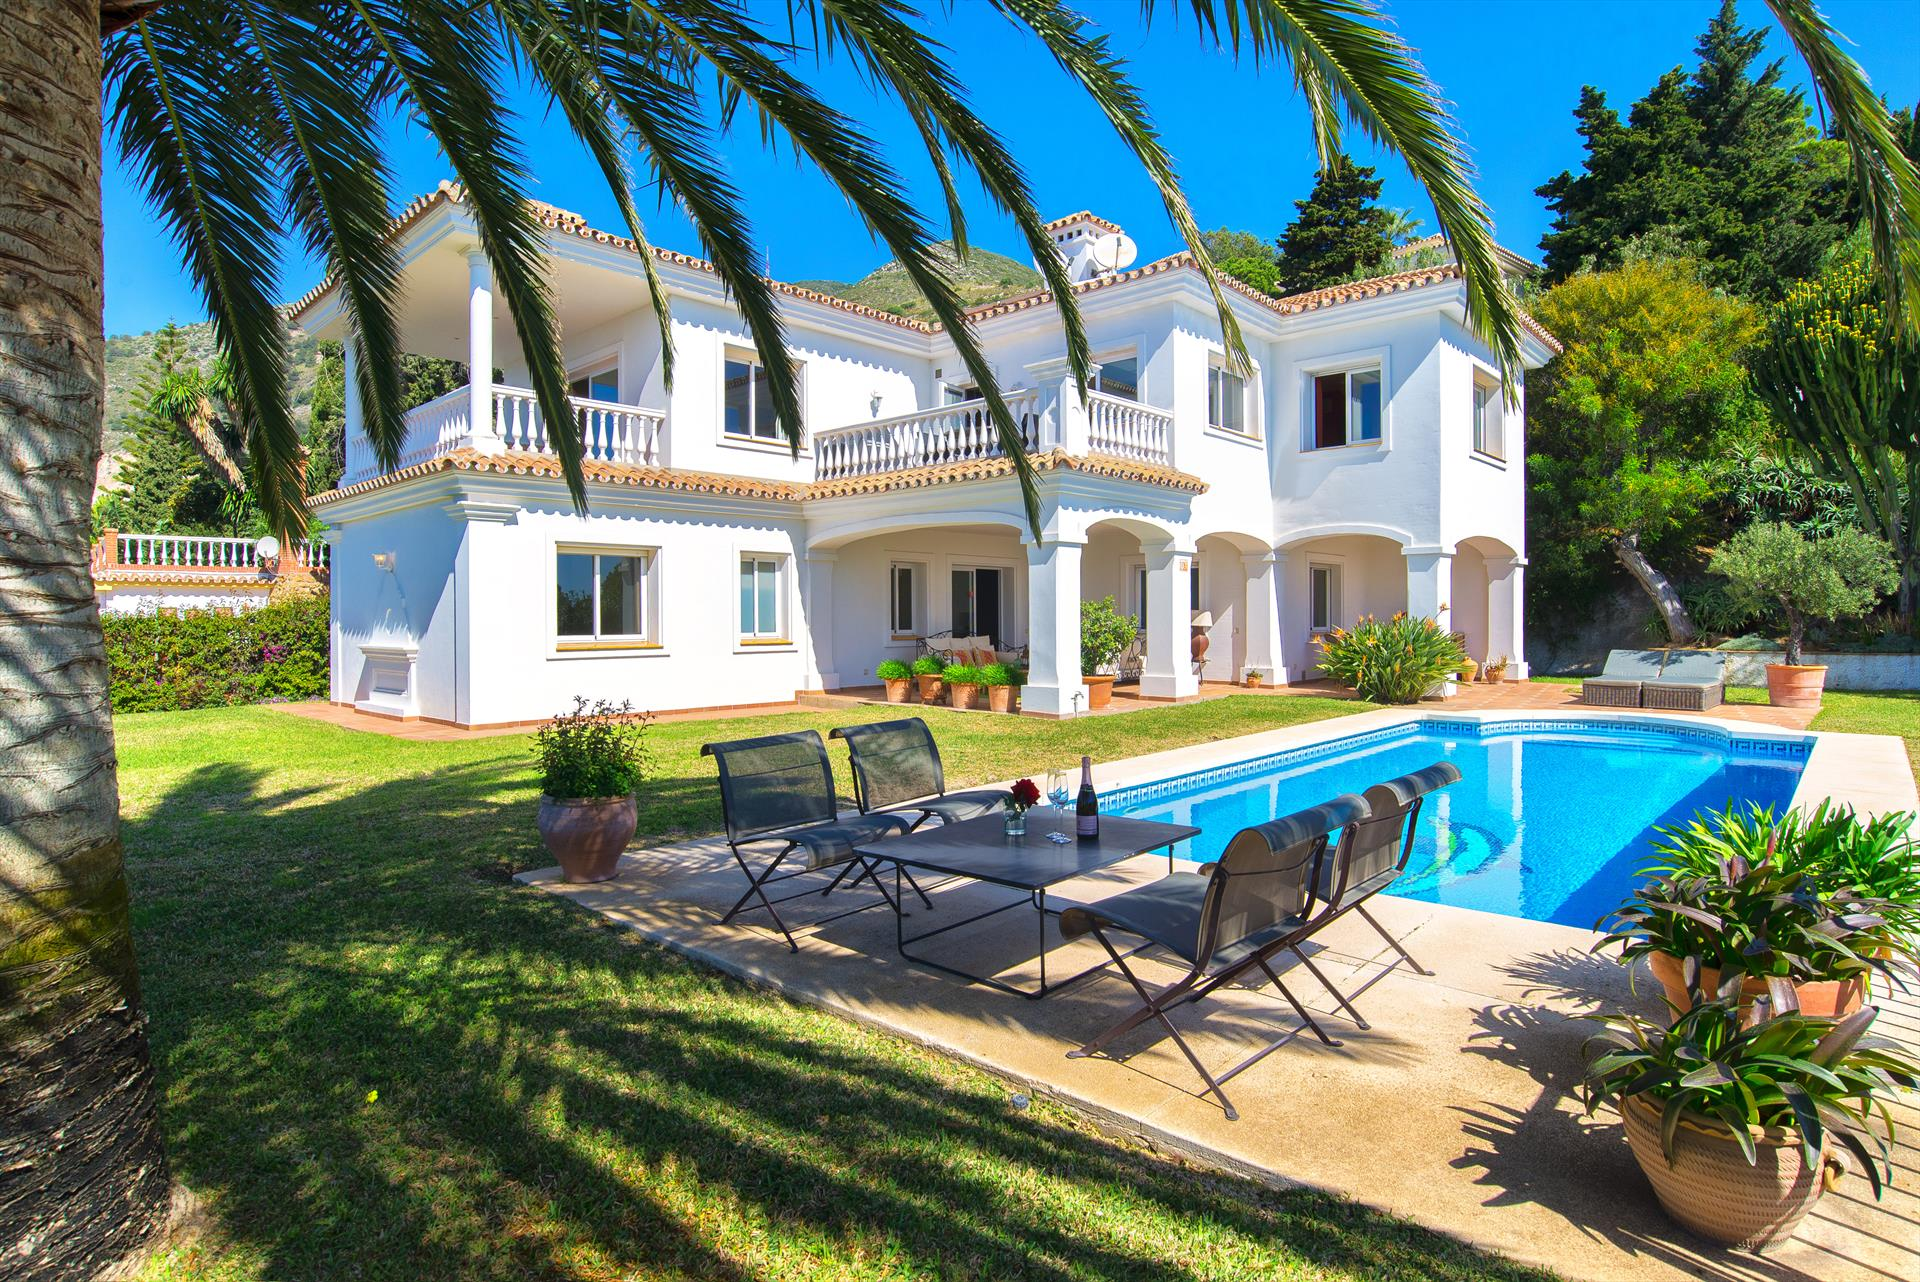 Casa Mirage, Luxury villa  with private pool in Benalmádena, Andalusia, Spain for 8 persons.....